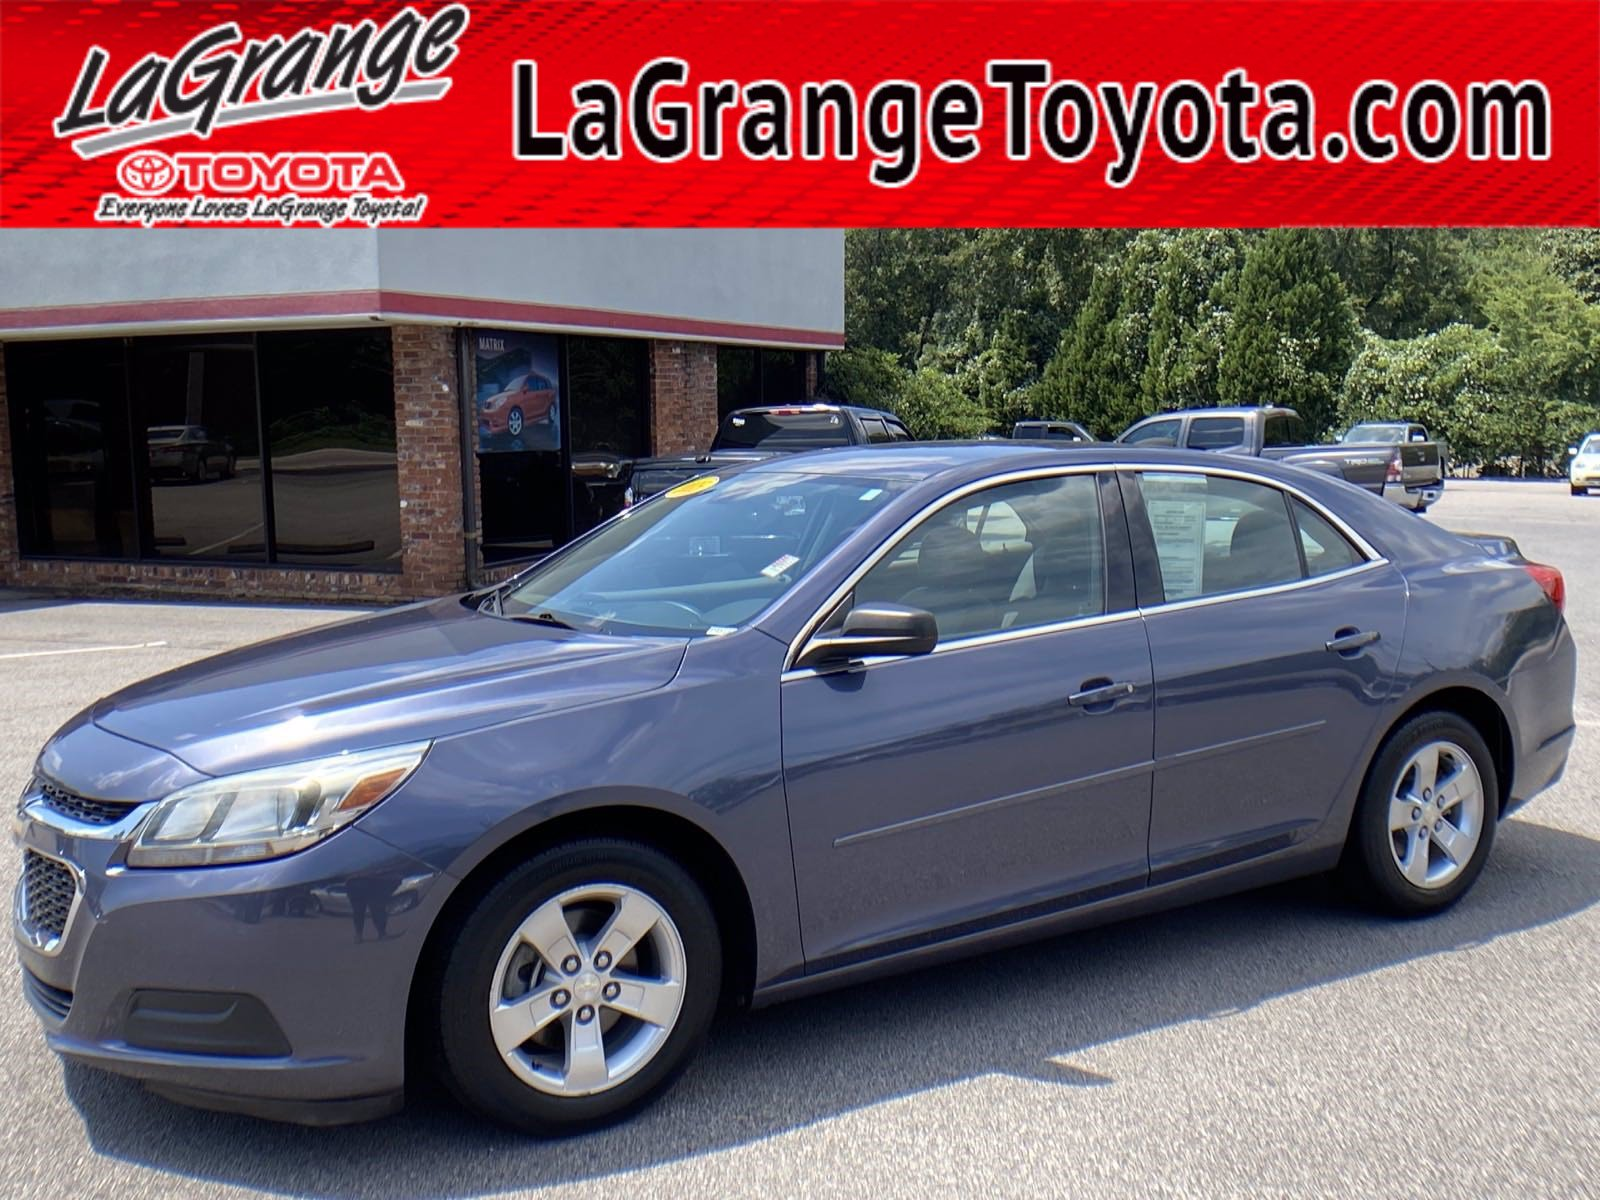 Pre-Owned 2015 Chevrolet Malibu 4dr Sdn LS w/1LS